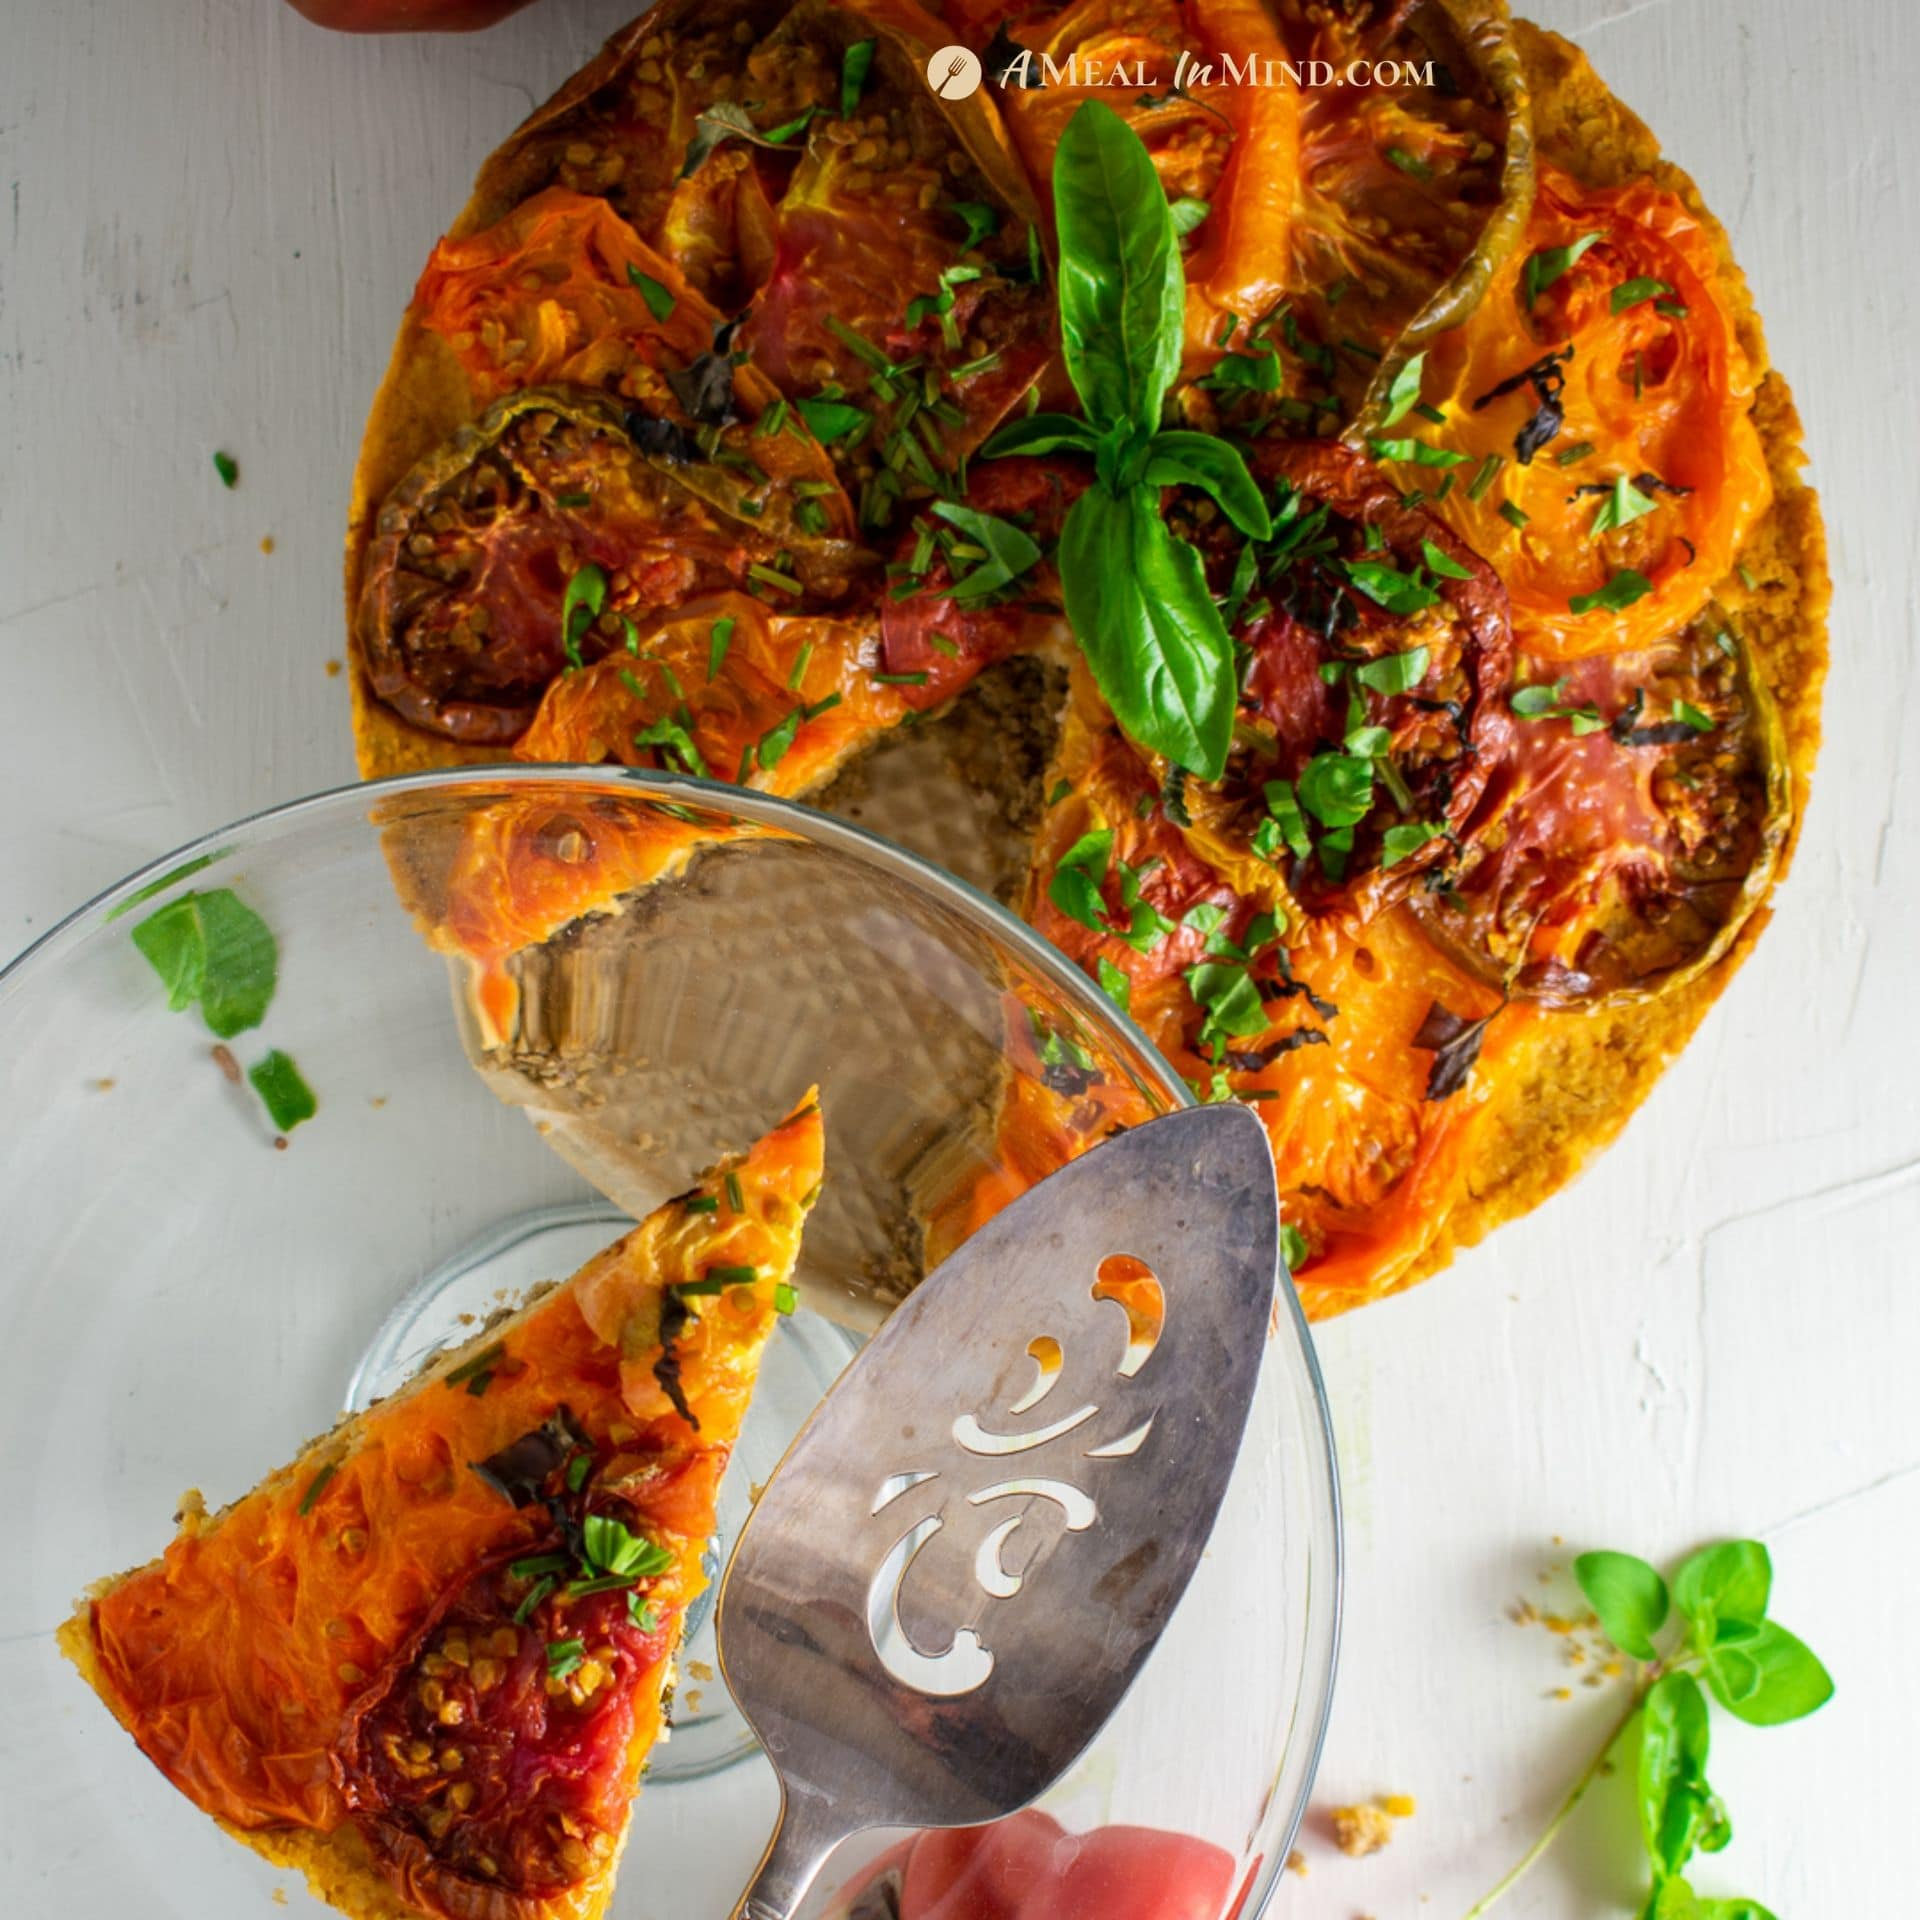 Roasted Heirloom Tomato Tart with Chickpea-Walnut Filling – GF and vegan